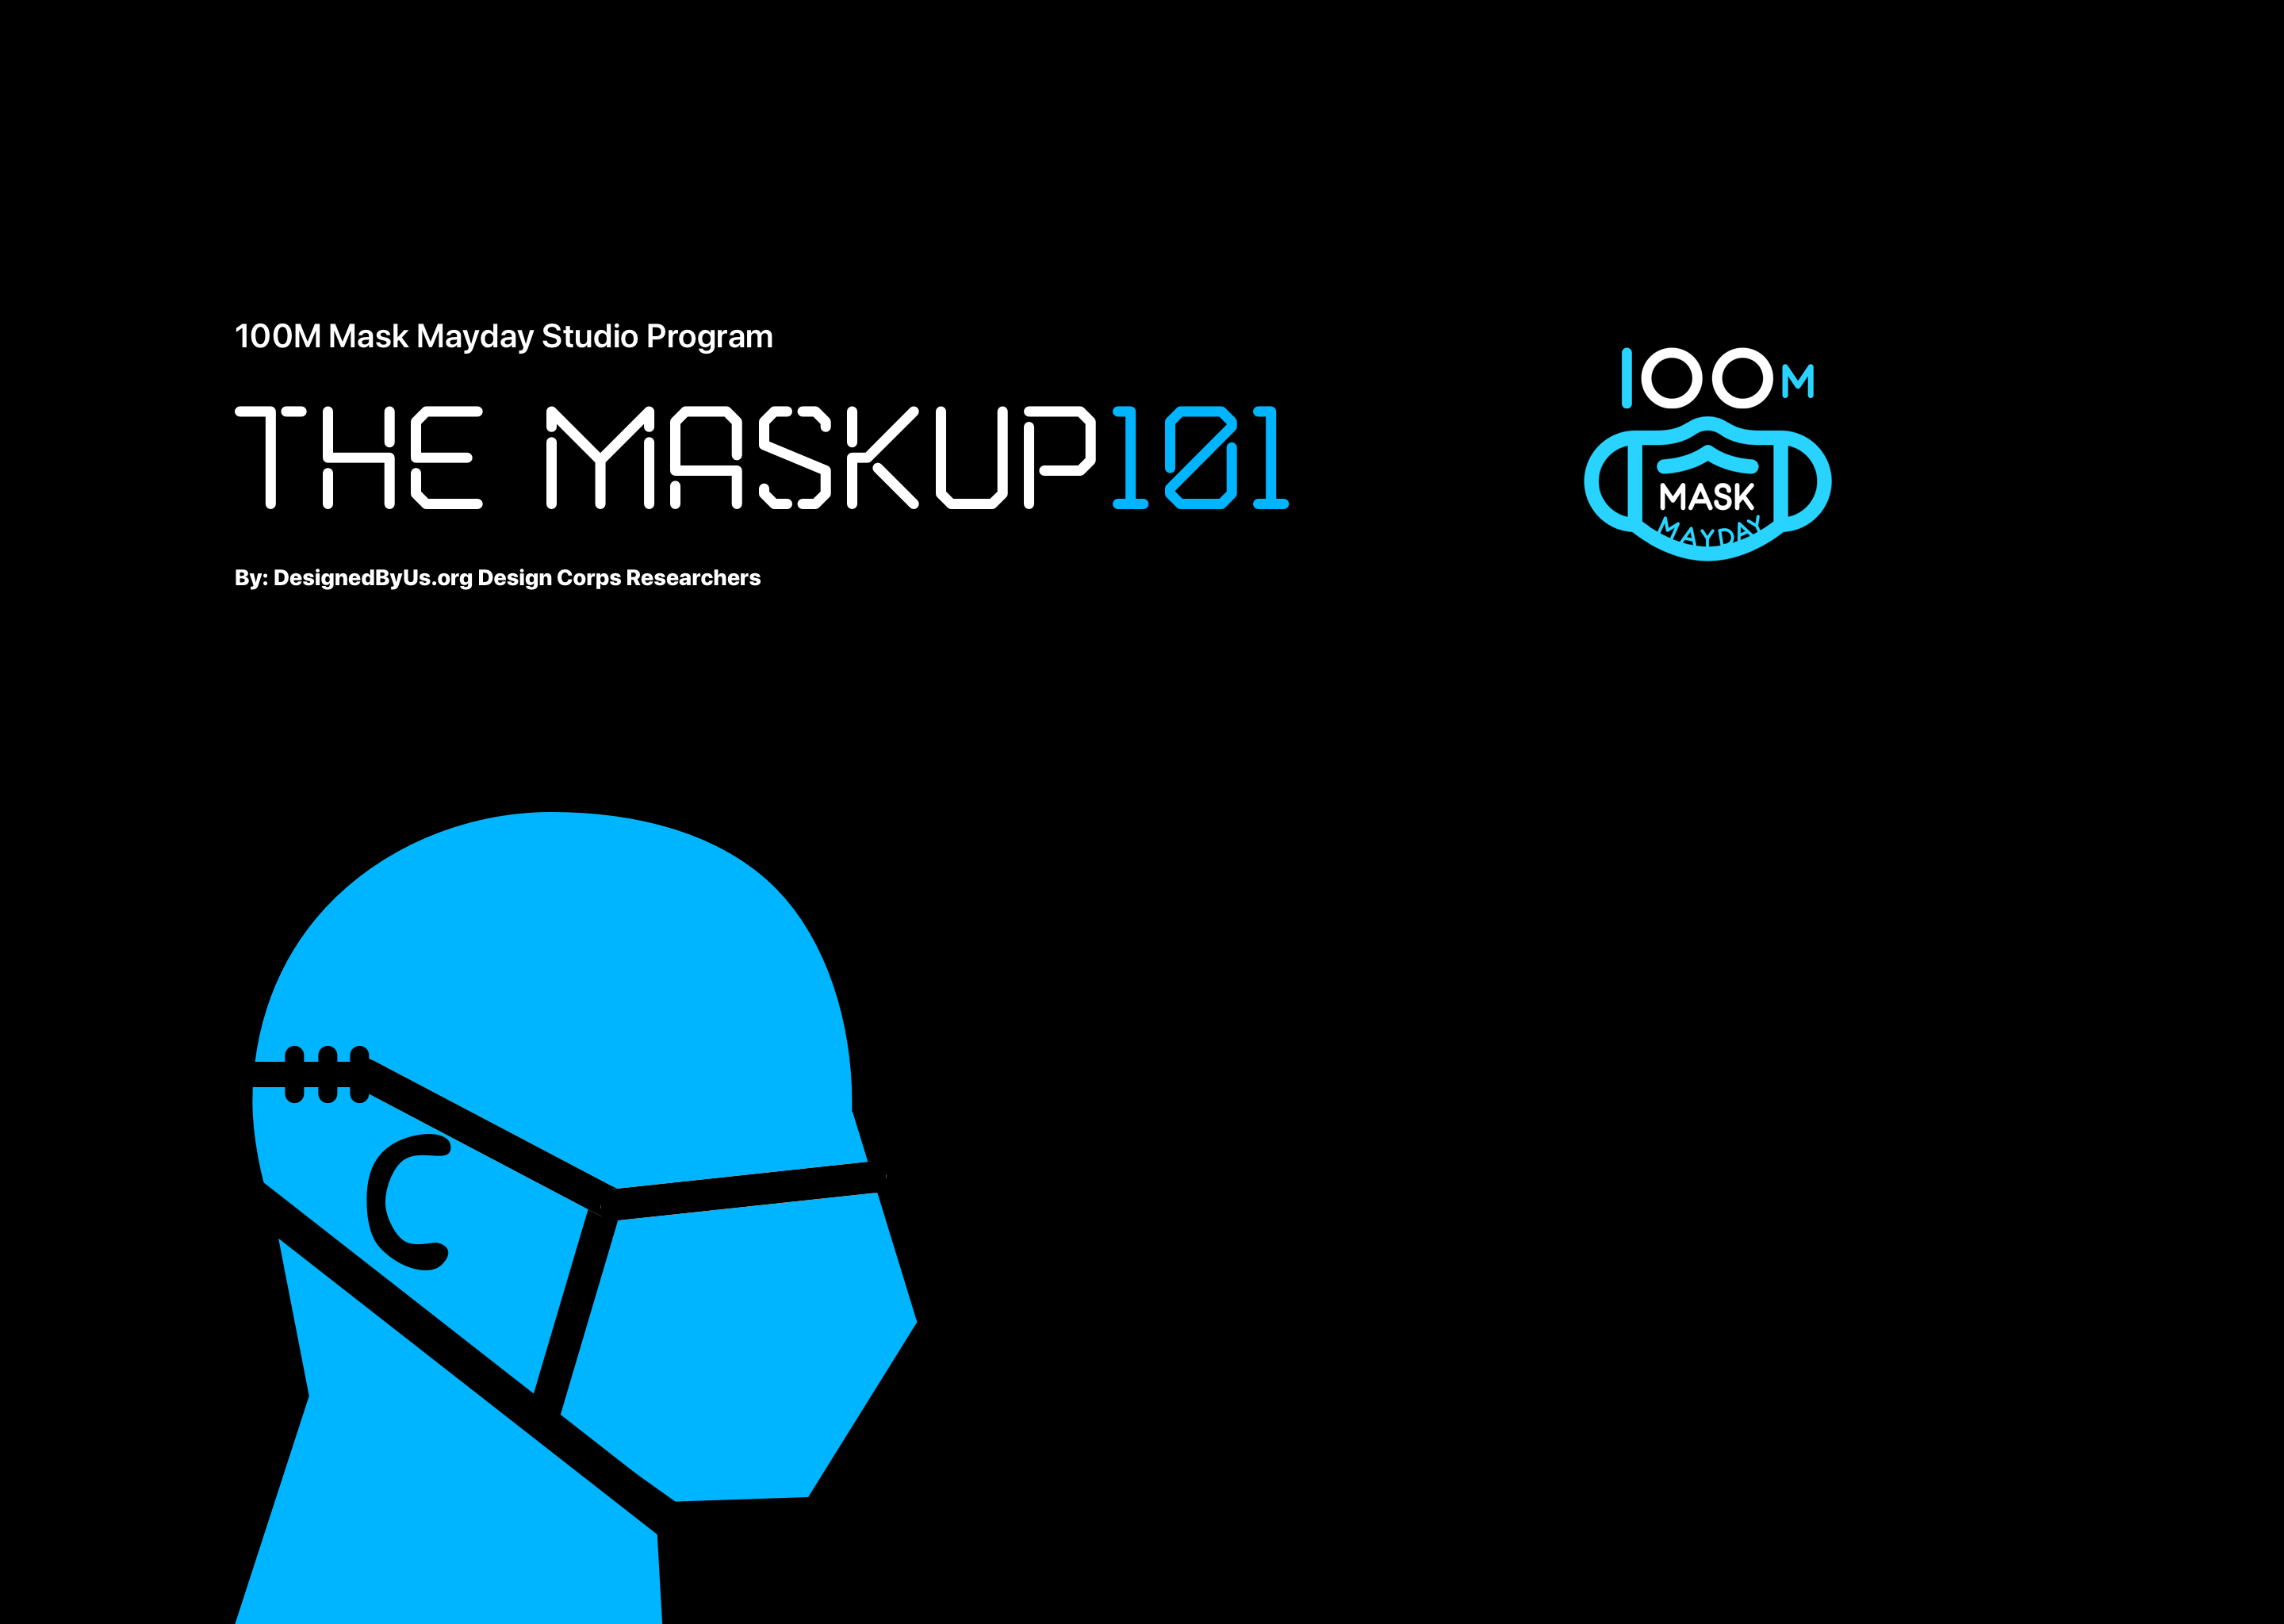 Masks are not only essential they are in vogue. Influencers, community leaders, sheros, heros and theroes are modeling how to save lives. The #MaskUp101 outlines the public health benefits of mask usage. #DesignCorps #MaskUp via @https://www.pinterest.com/jpenabickley/